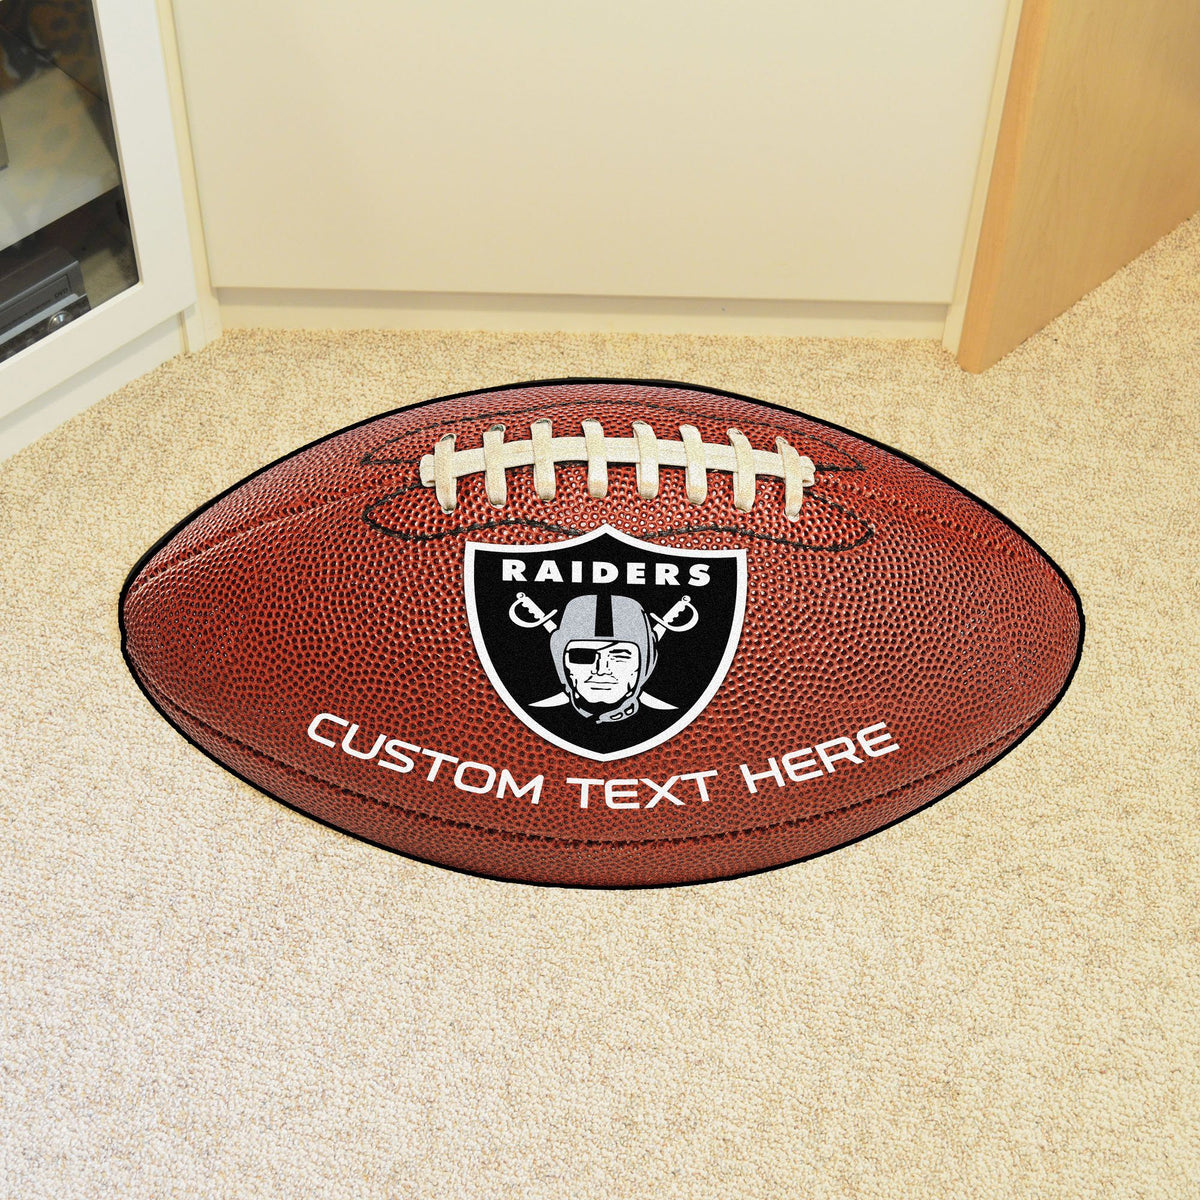 NFL Personalized Football Mat Personalized Football Mat Fan Mats Oakland Raiders